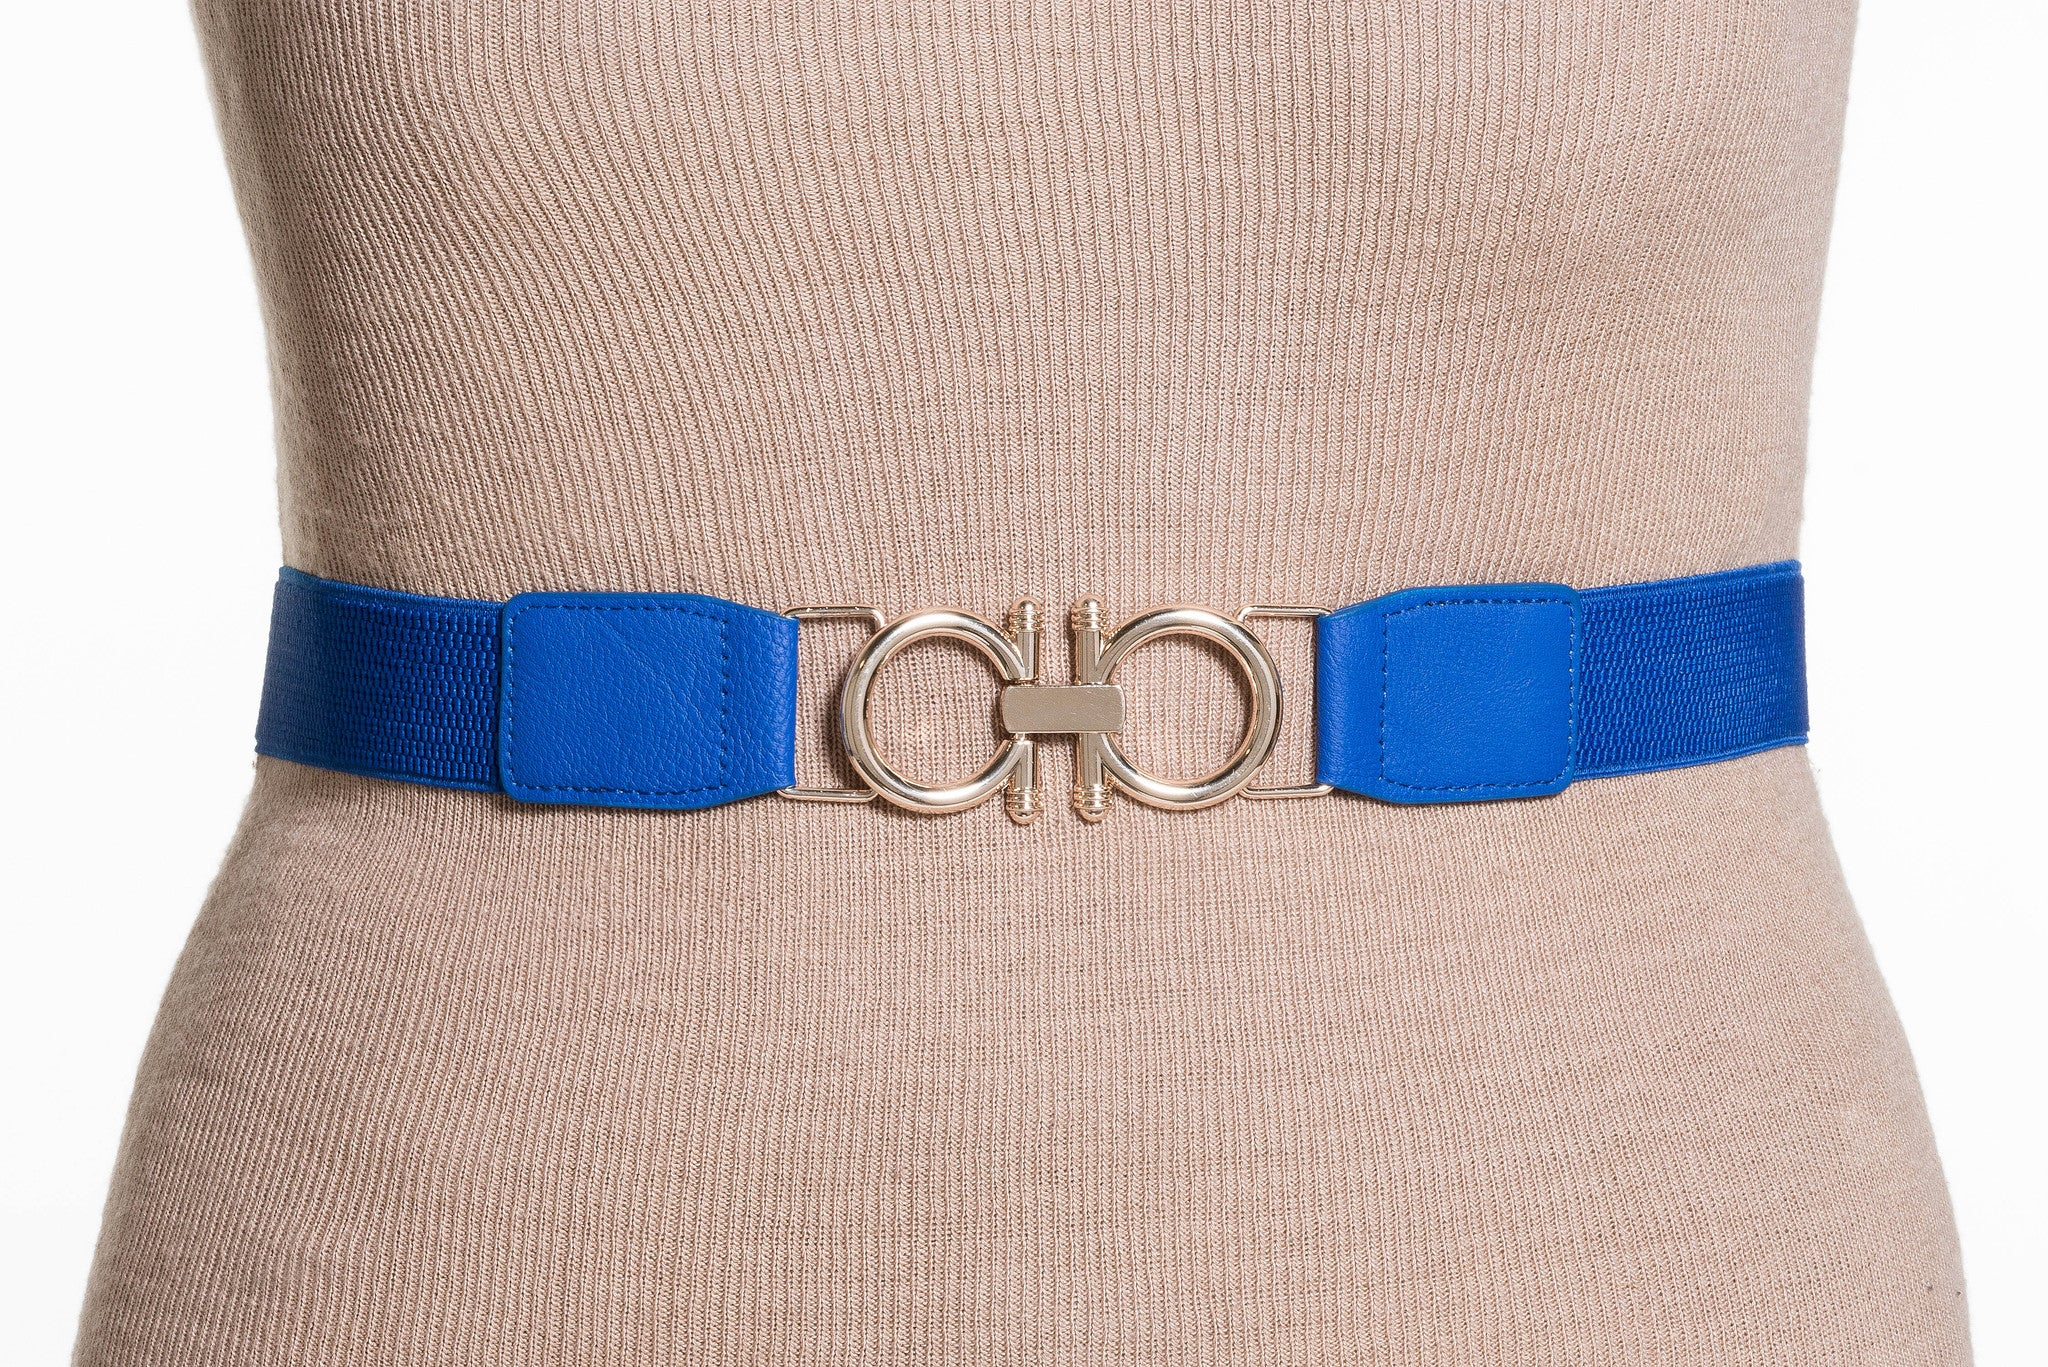 Final Sale Plus Size Elastic Band / Gold Two Ring Lock Belt in Royal Blue